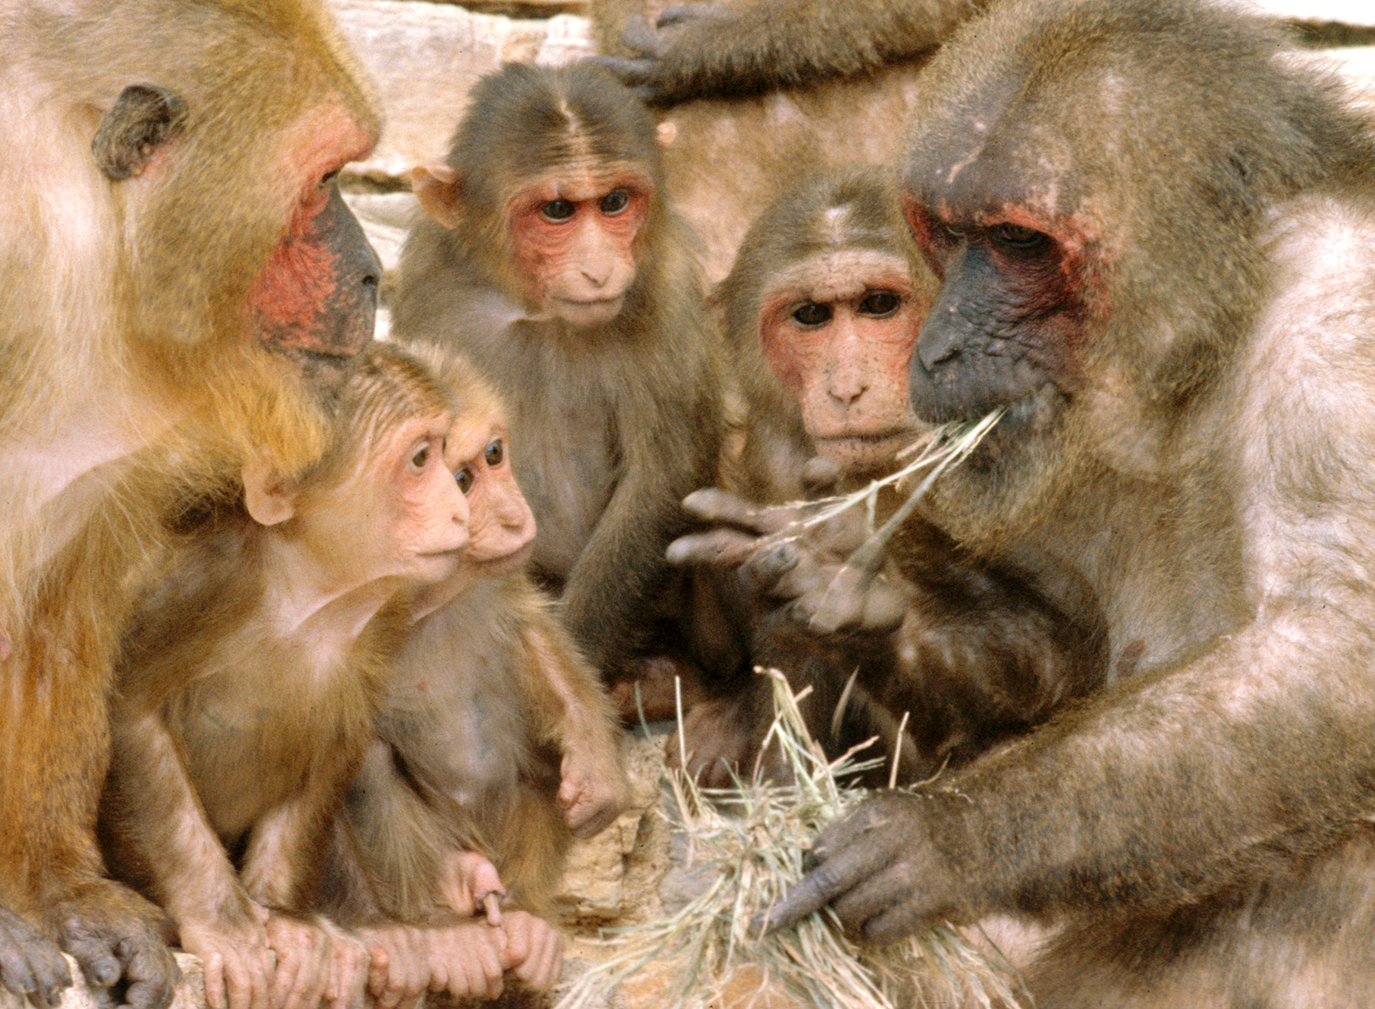 A tribe of stump tail macaques (Macaca arctoides) watch their alpha male eating.   Macaques making meaningful gestures, such as grabbing for food, triggers the same mirror neurone network in the animal performing the action and the observers. (Image: Wikimedia commons)